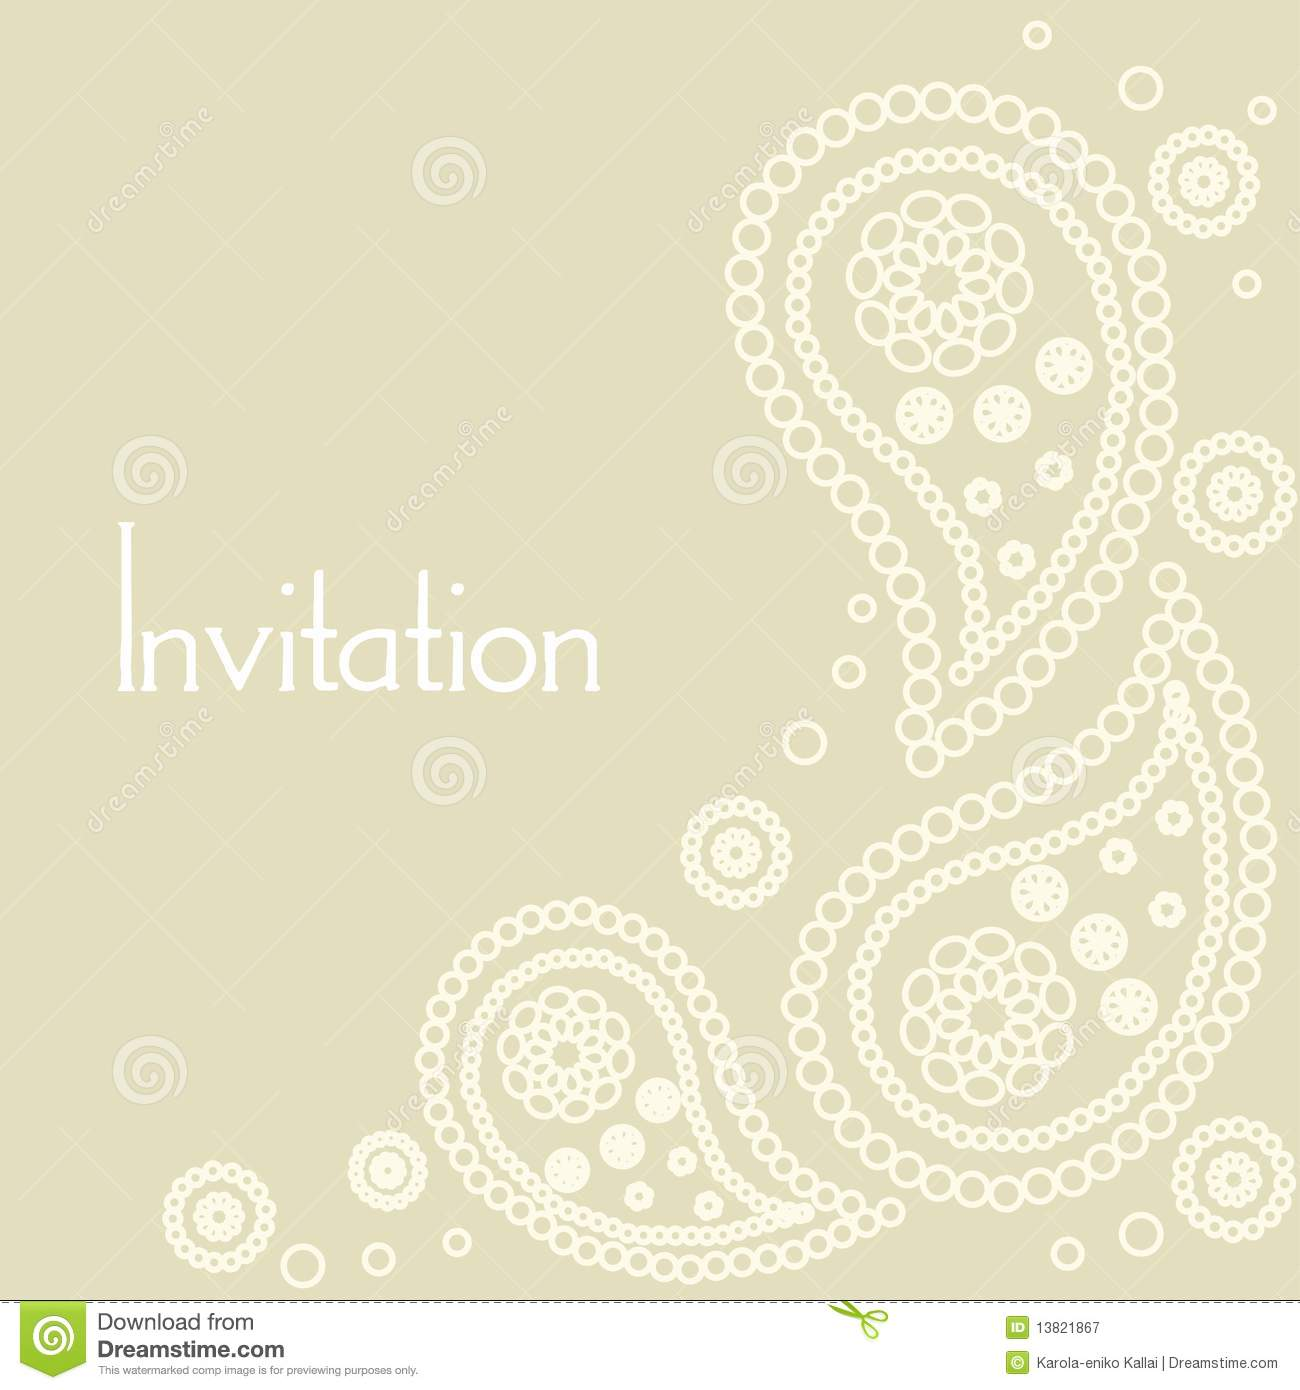 Blank wedding invitation design templates - visualbrains.info